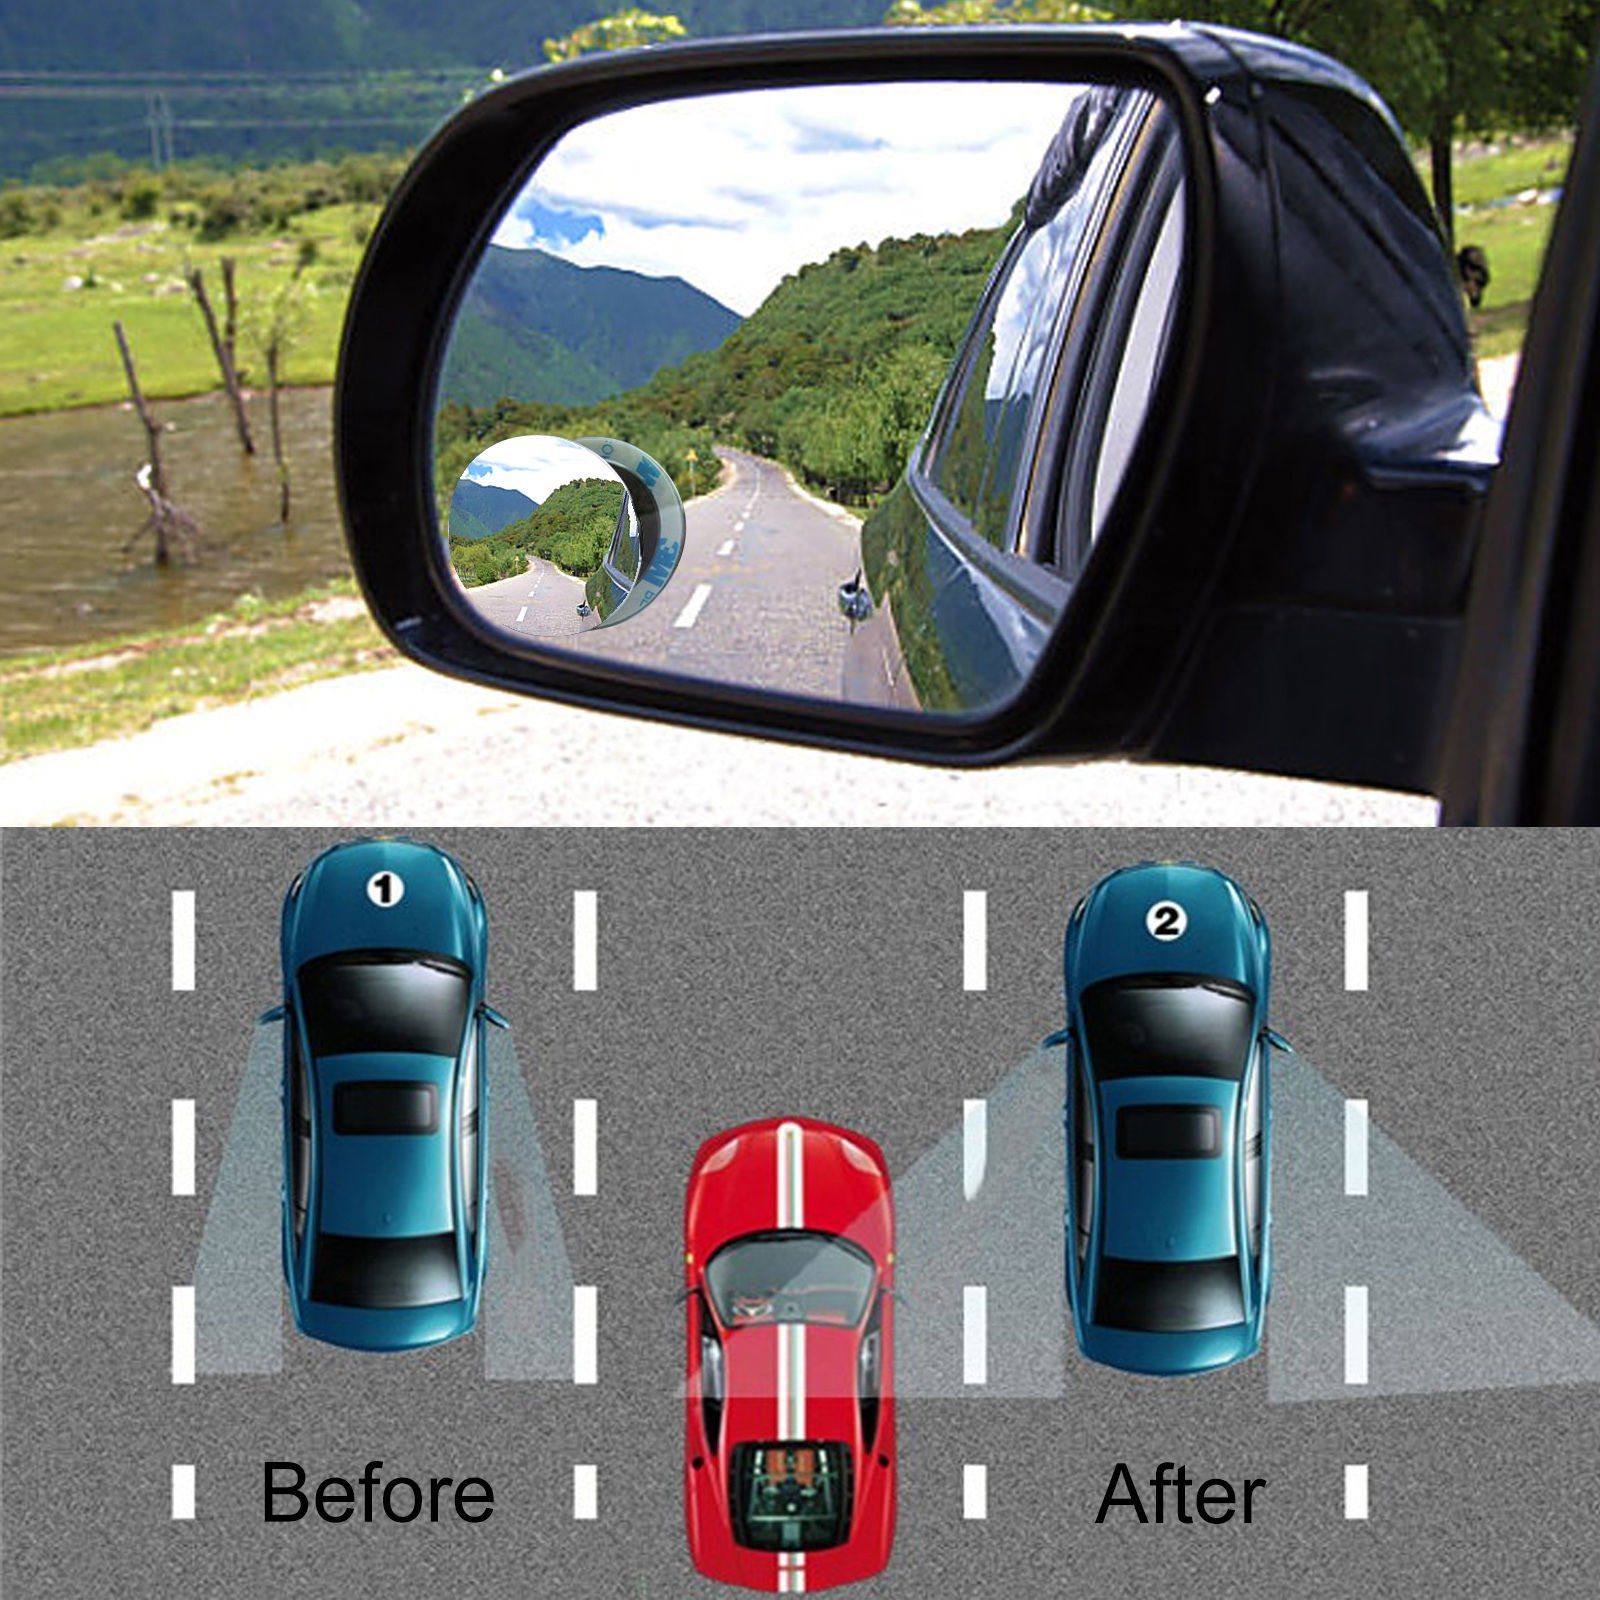 Kasstino 1Pair Car Vehicle Driver Wide Angle Round Convex Mirror Blind Spot Auto RearView by Kasstino (Image #6)